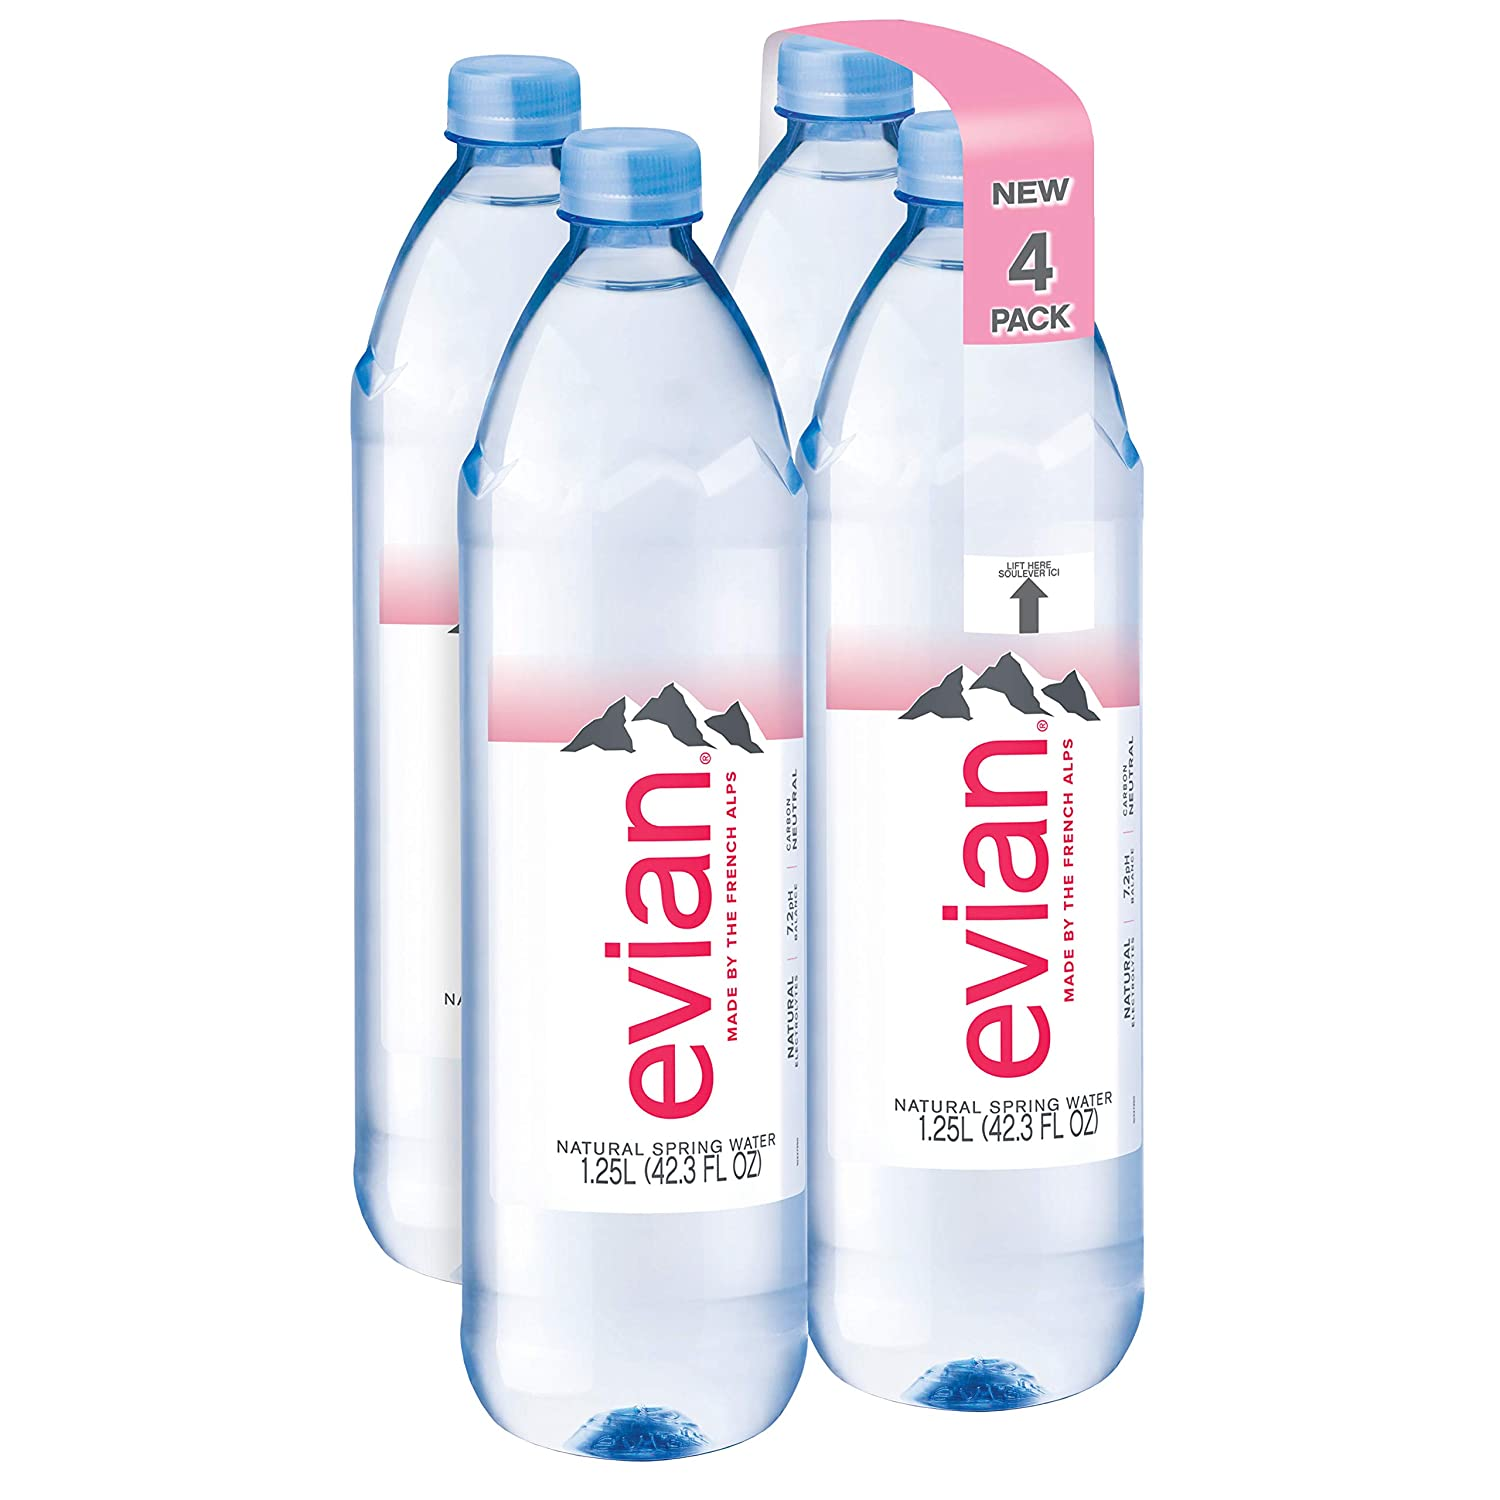 Evian Natural Spring Water 1 25 Liter 42 27 Fl Oz Pack Of 4 Naturally Filtered Spring Water In Bulk Size Water Bottles Amazon Com Grocery Gourmet Food